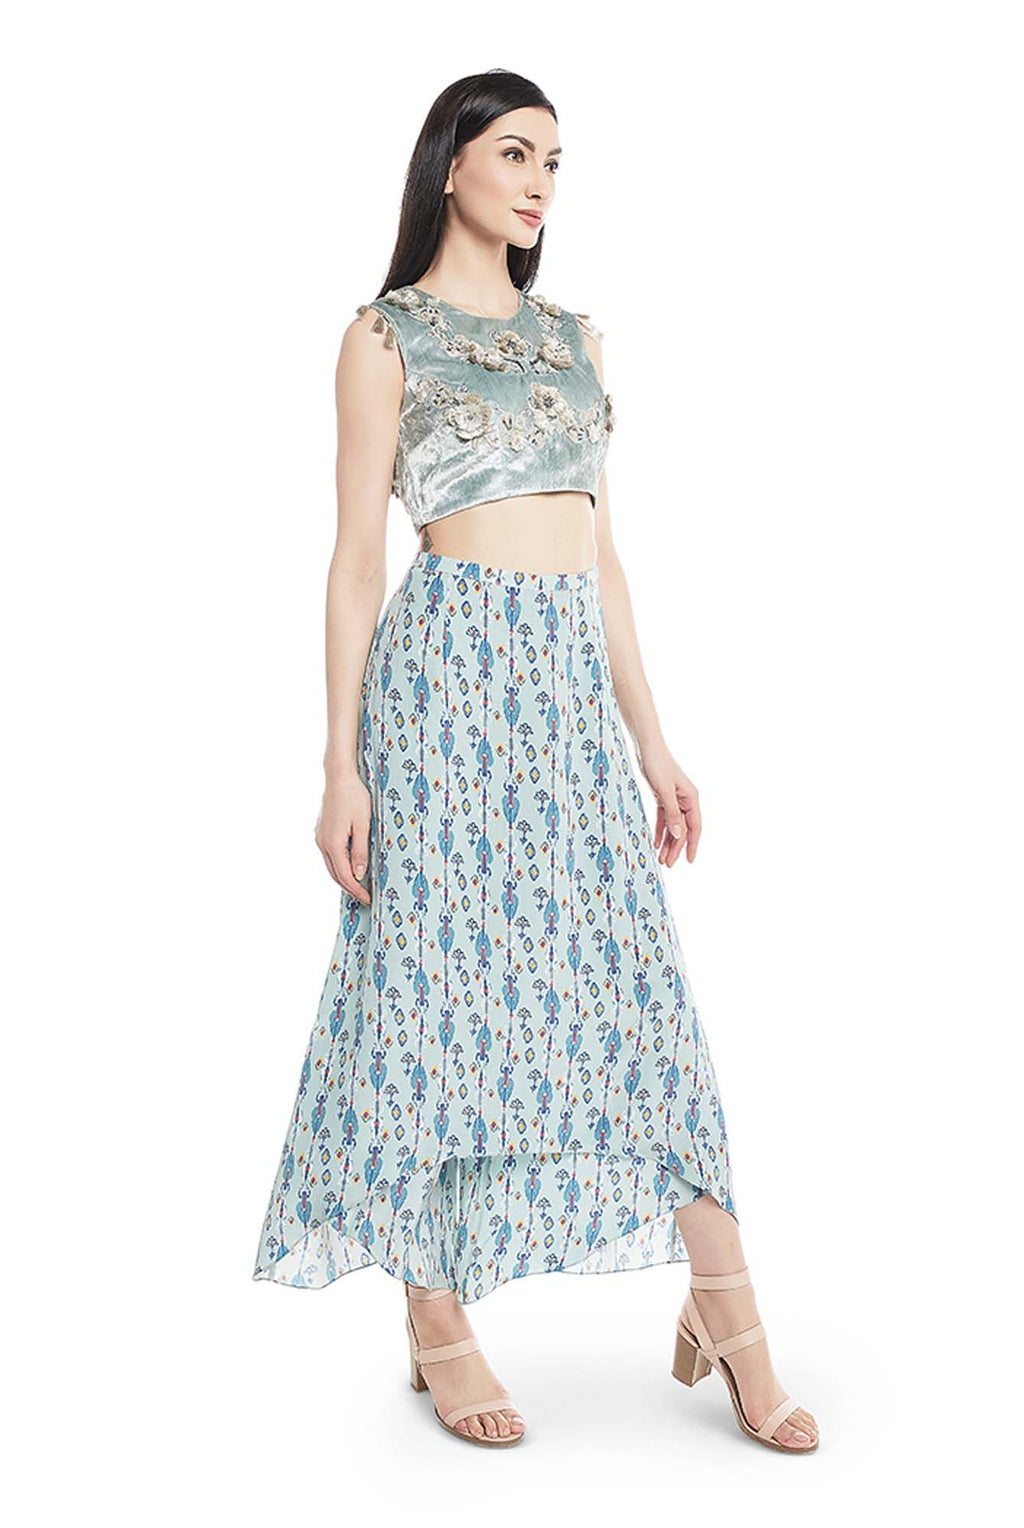 Powder Blue Colour Velvet Choli With Blue Printed Crepe Skirt Palazzo - Riviera Closet